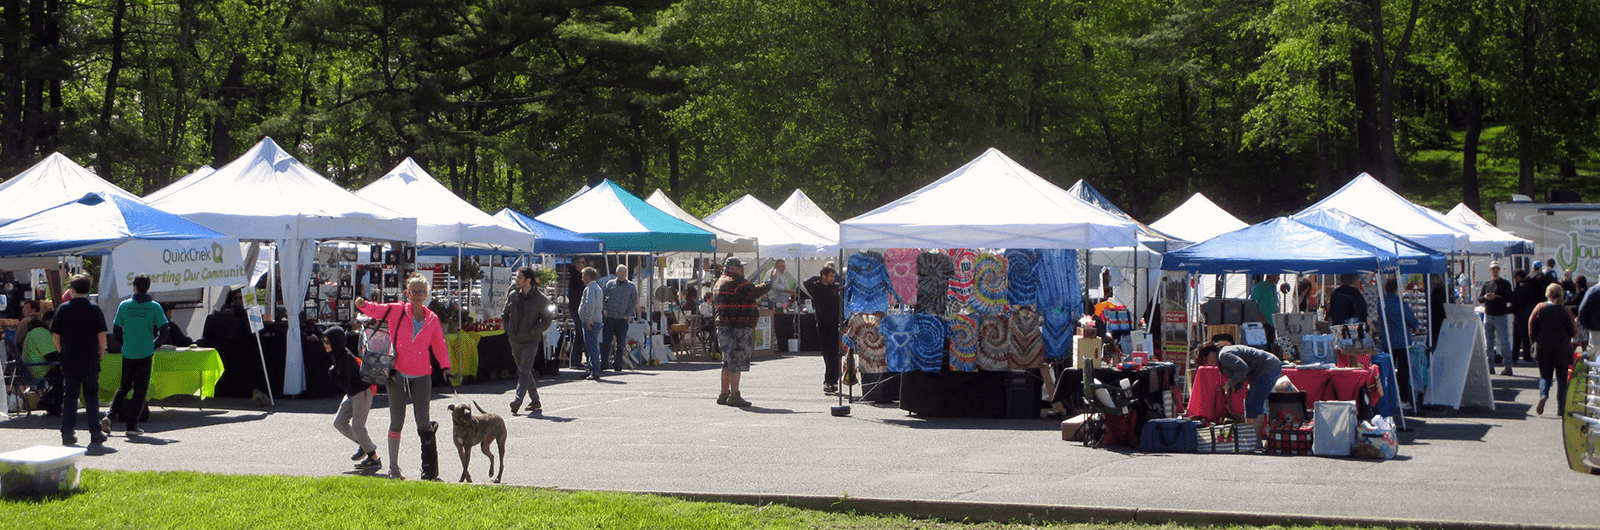 Lake Hopatcong Block Party Including Tents